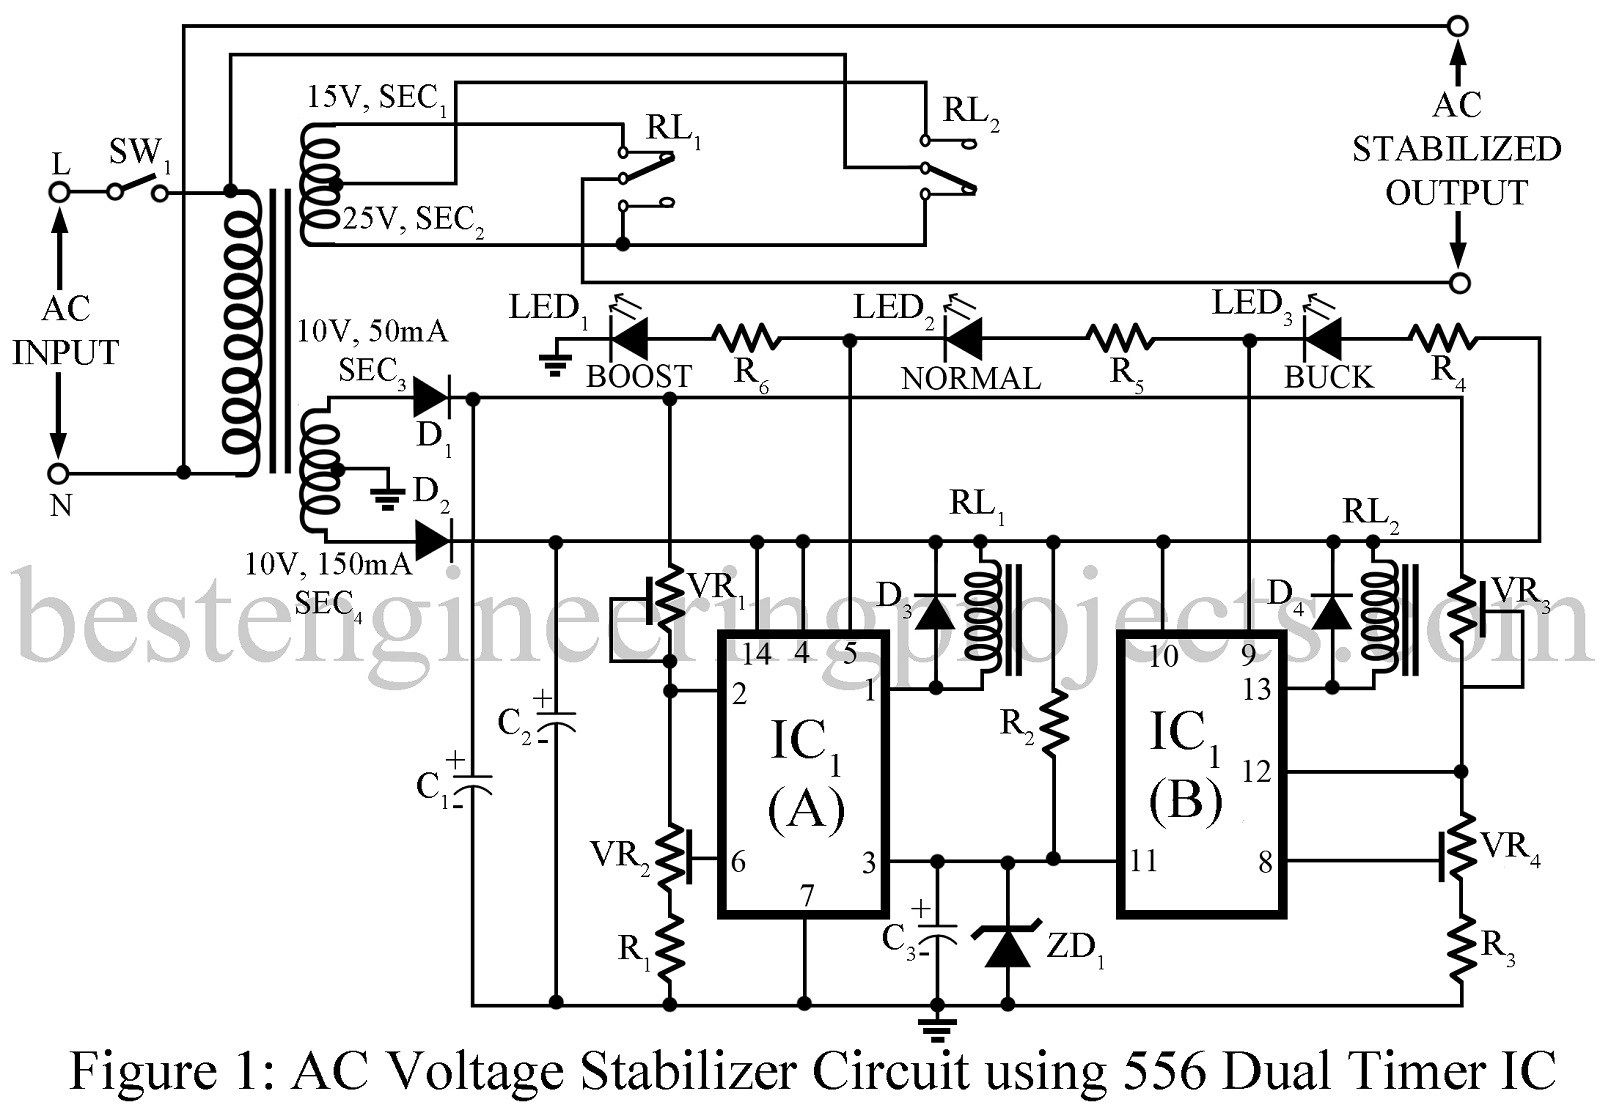 voltage stabilizer circuit diagram wiring diagrams automatic voltage stabilizer circuit diagram also ignition circuit [ 1600 x 1113 Pixel ]